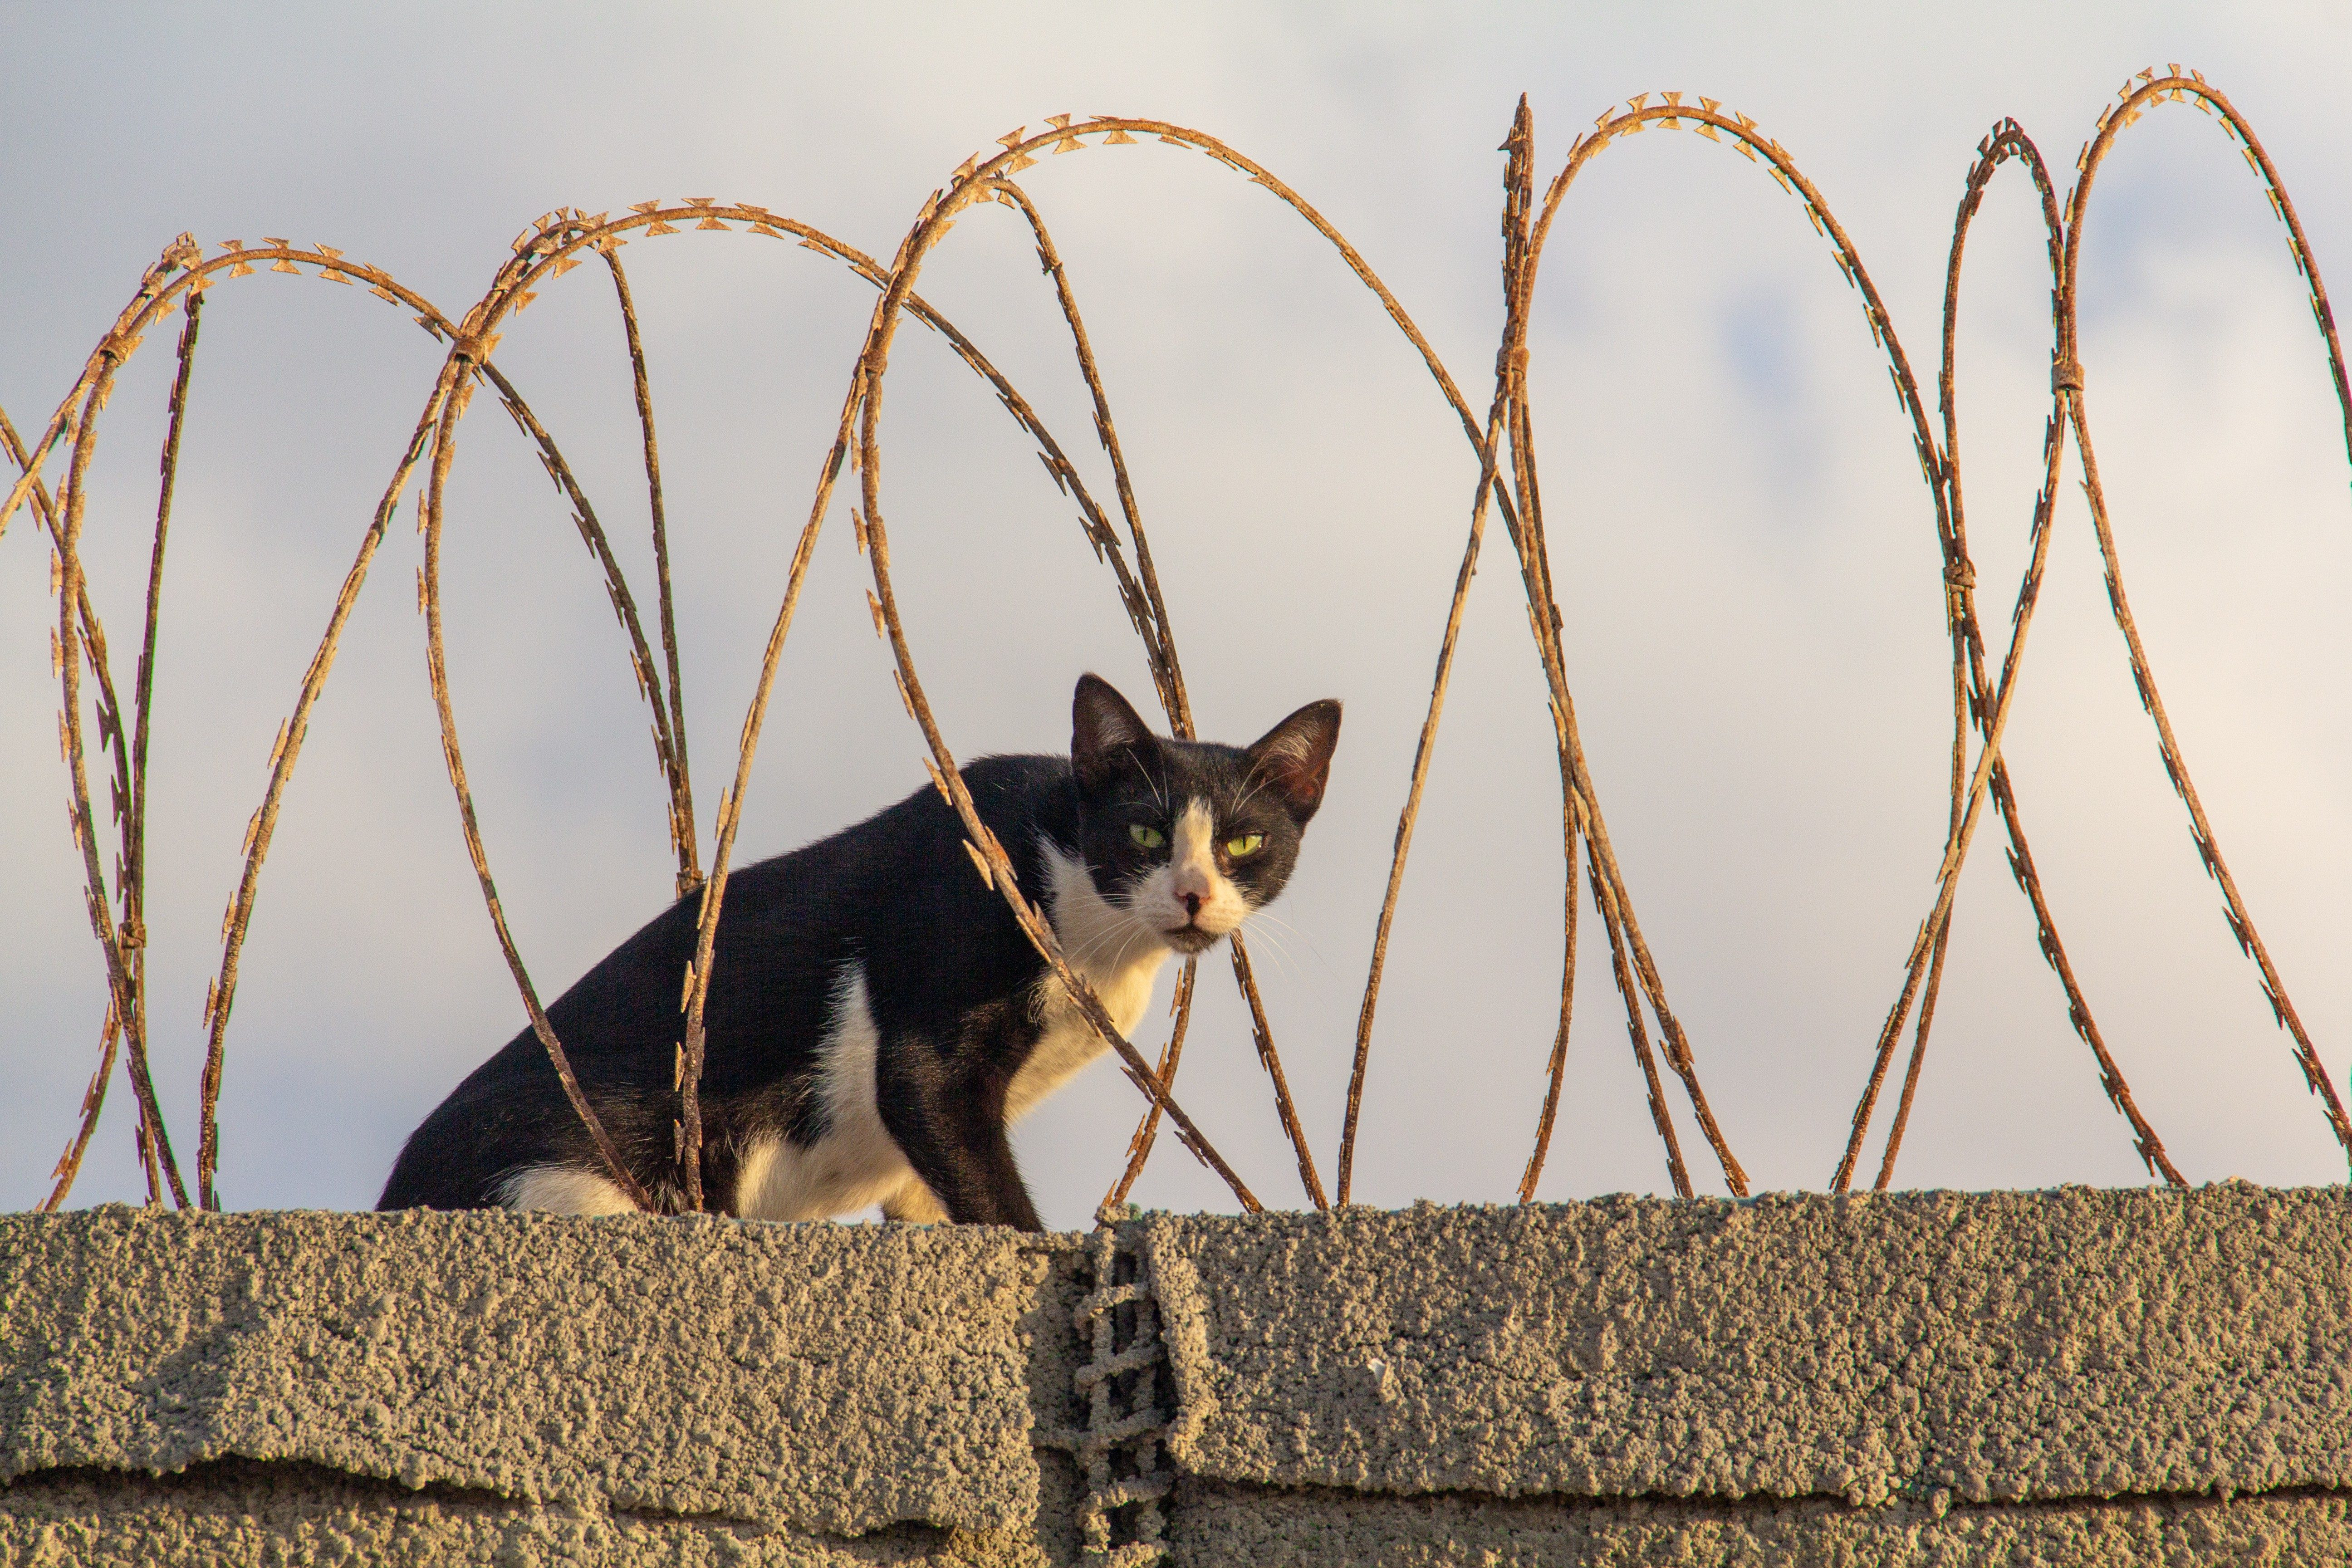 A black and white bicolor tuxedo cat with green eyes looks at the camera while sitting among barbed razor wire atop